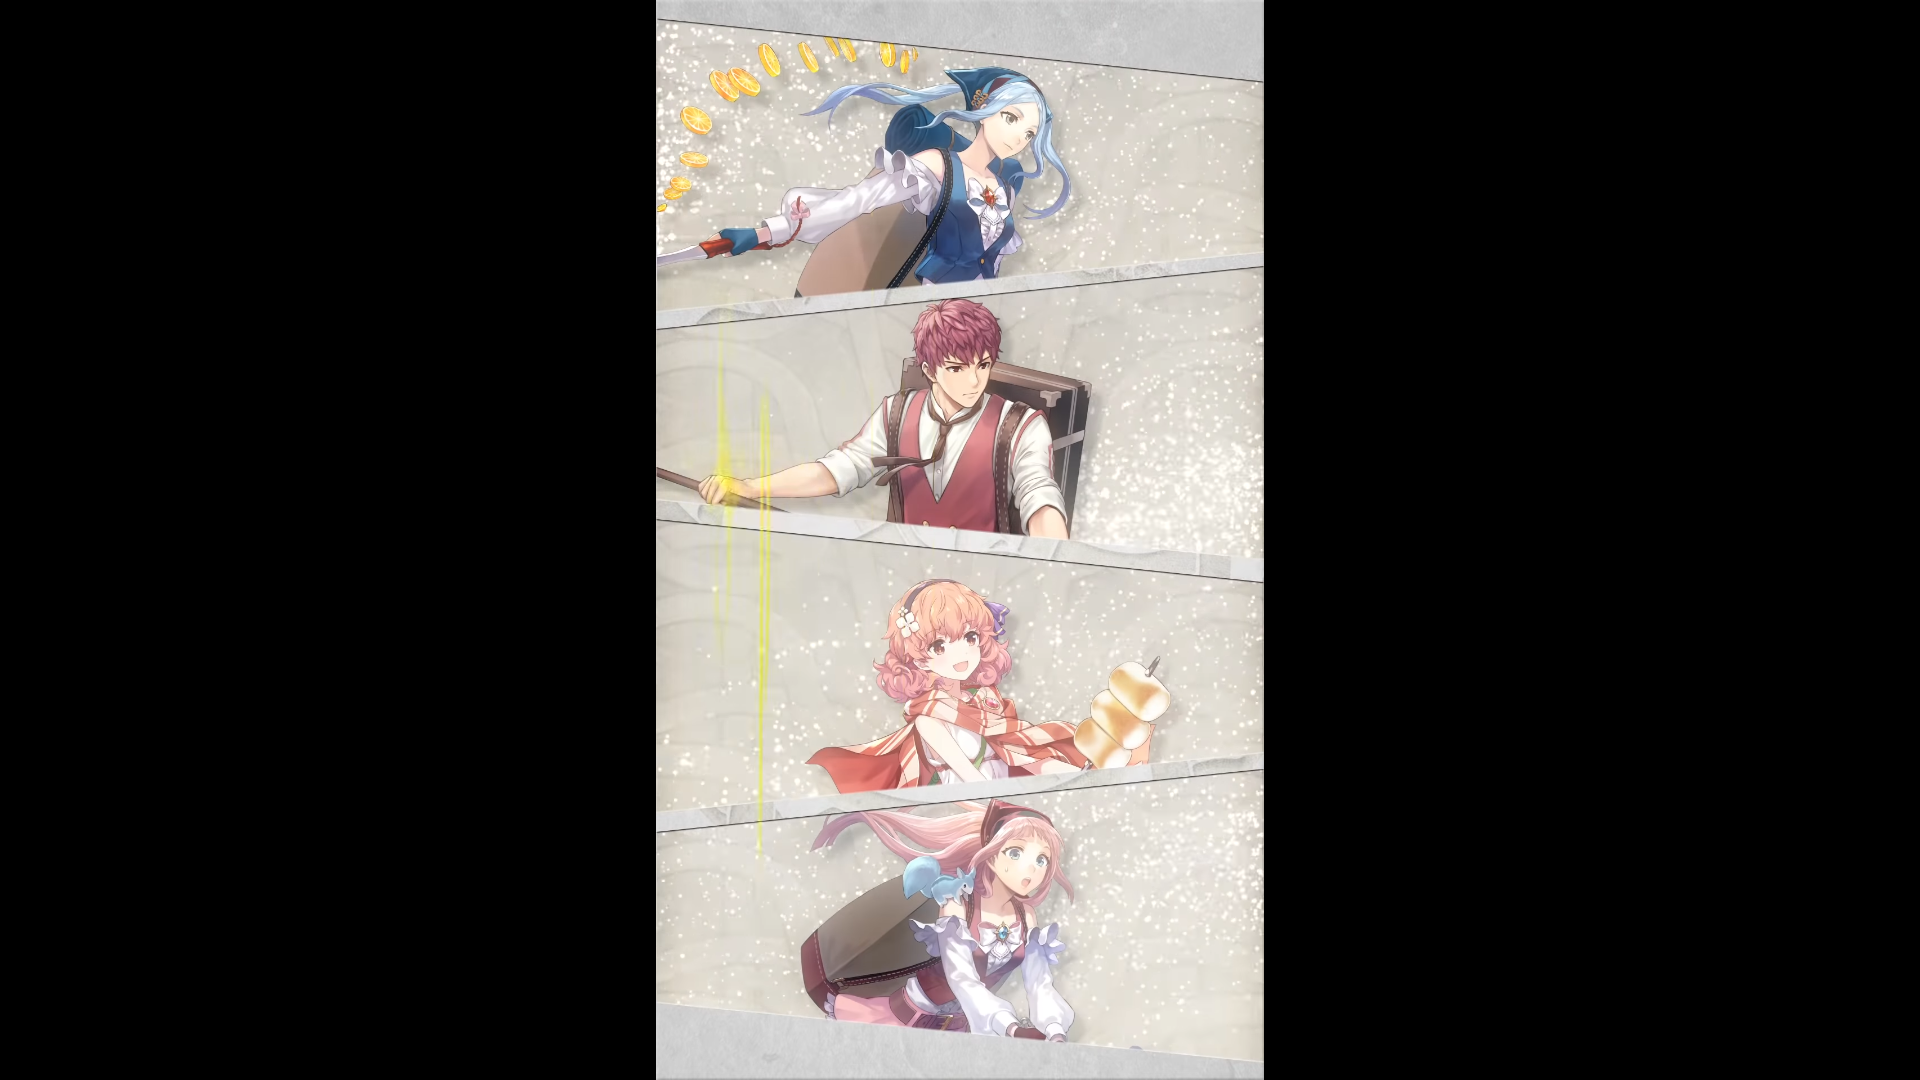 Fire Emblem Heroes: A Season for Picnics Summoning Focus and Paralogue story now live